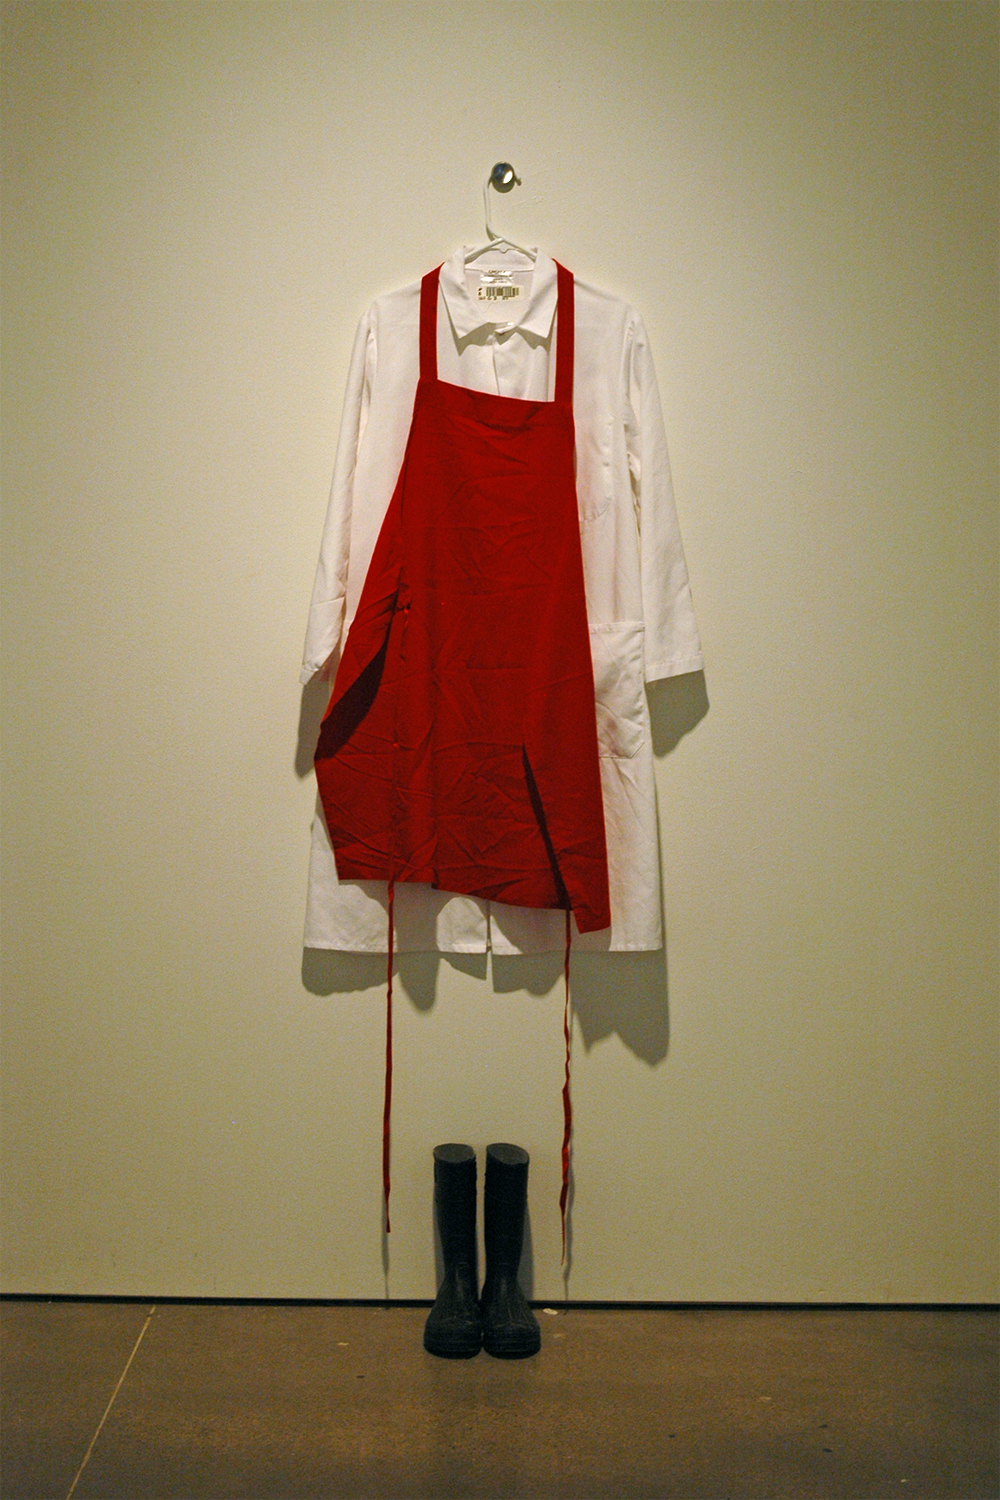 (2014)  Smock, Red Apron, Coat Hanger and Rubber Boots